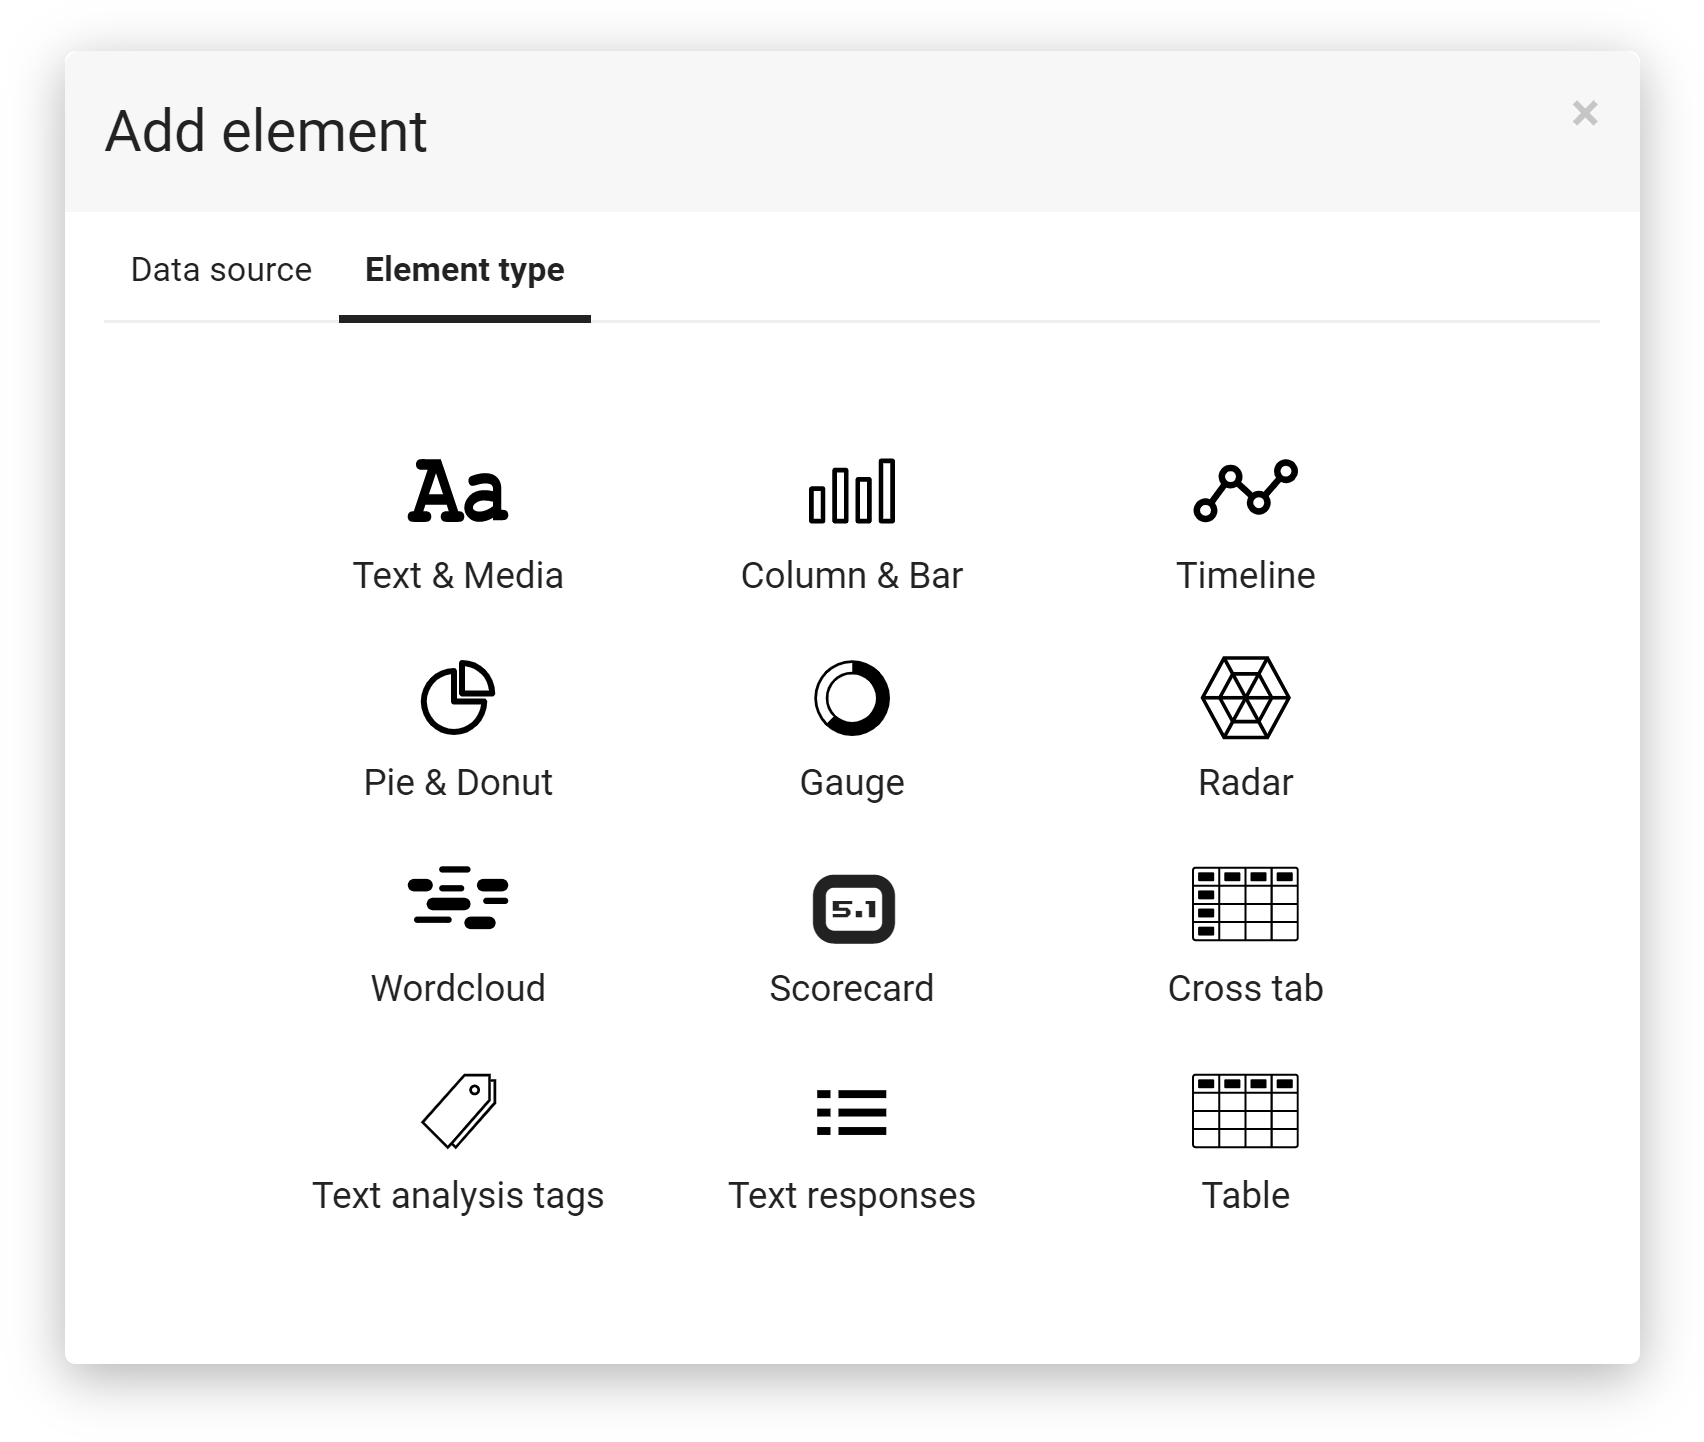 You have total control over every aspect of your reports, from the styling to which questions and chart types are used. You can include your meta-data and add dynamic content that changes depending on the results.